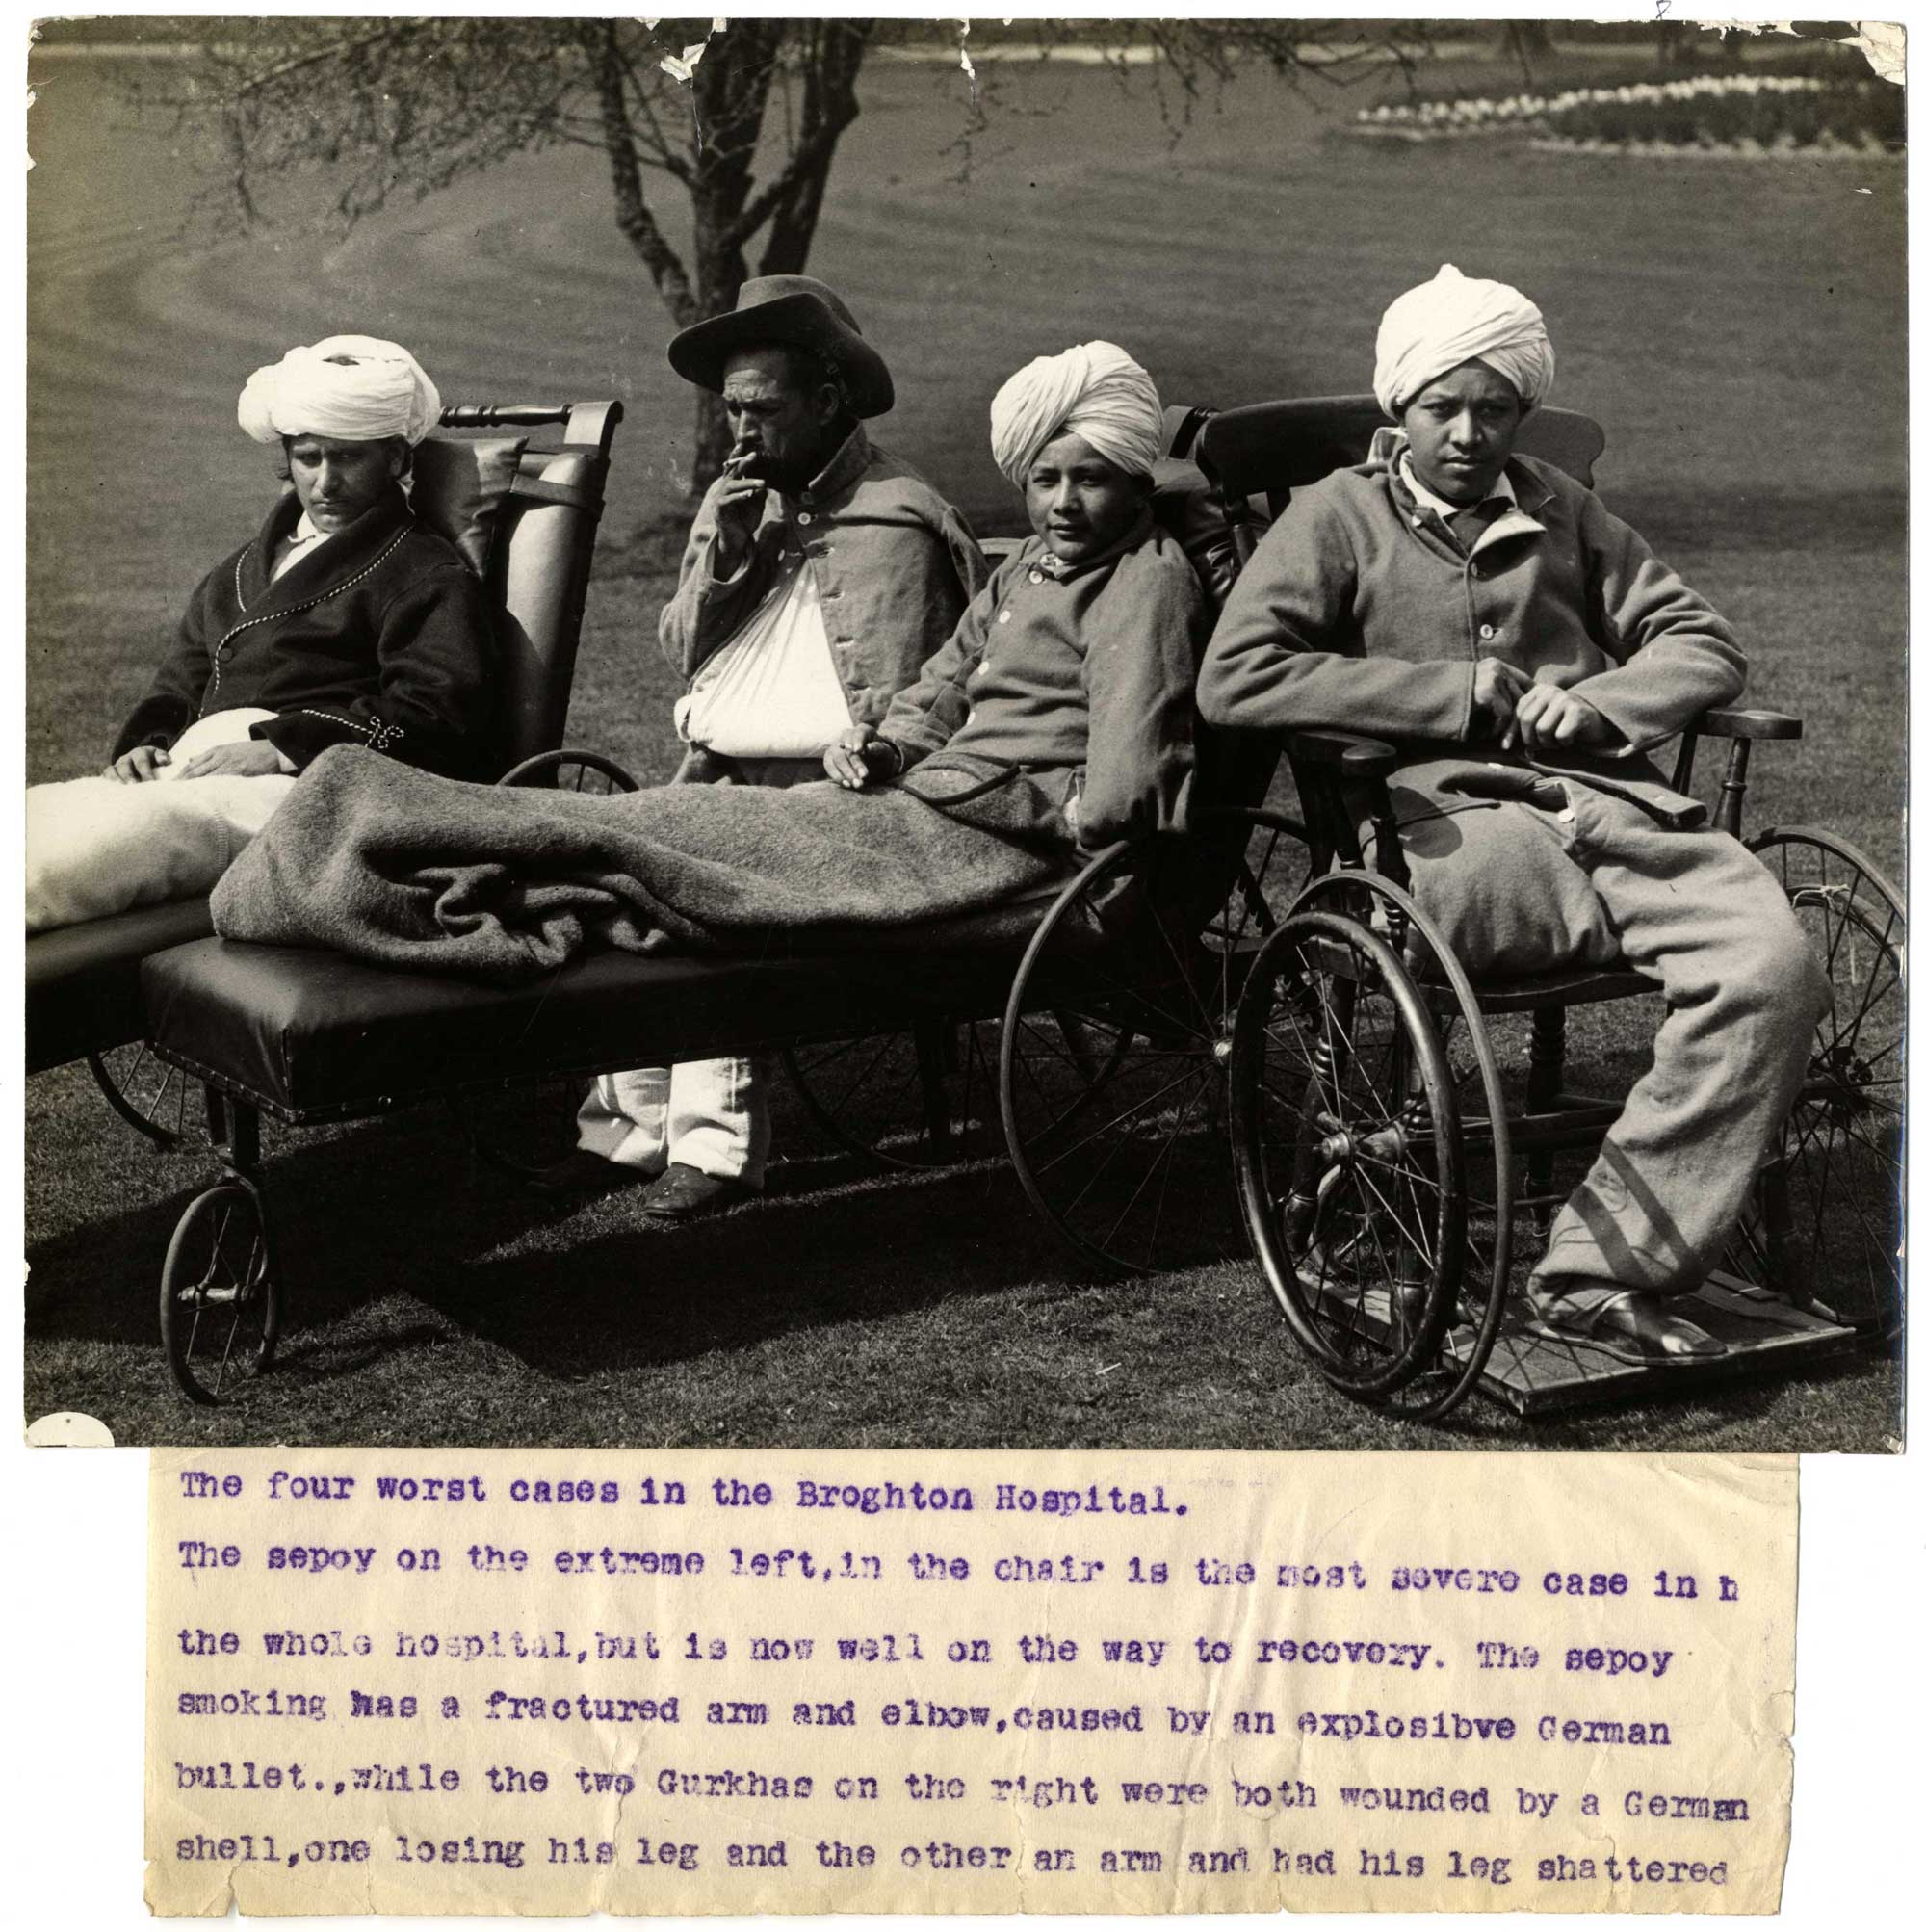 Four wounded Indian soldiers convalescing in a hospital in Brighton, 1915.